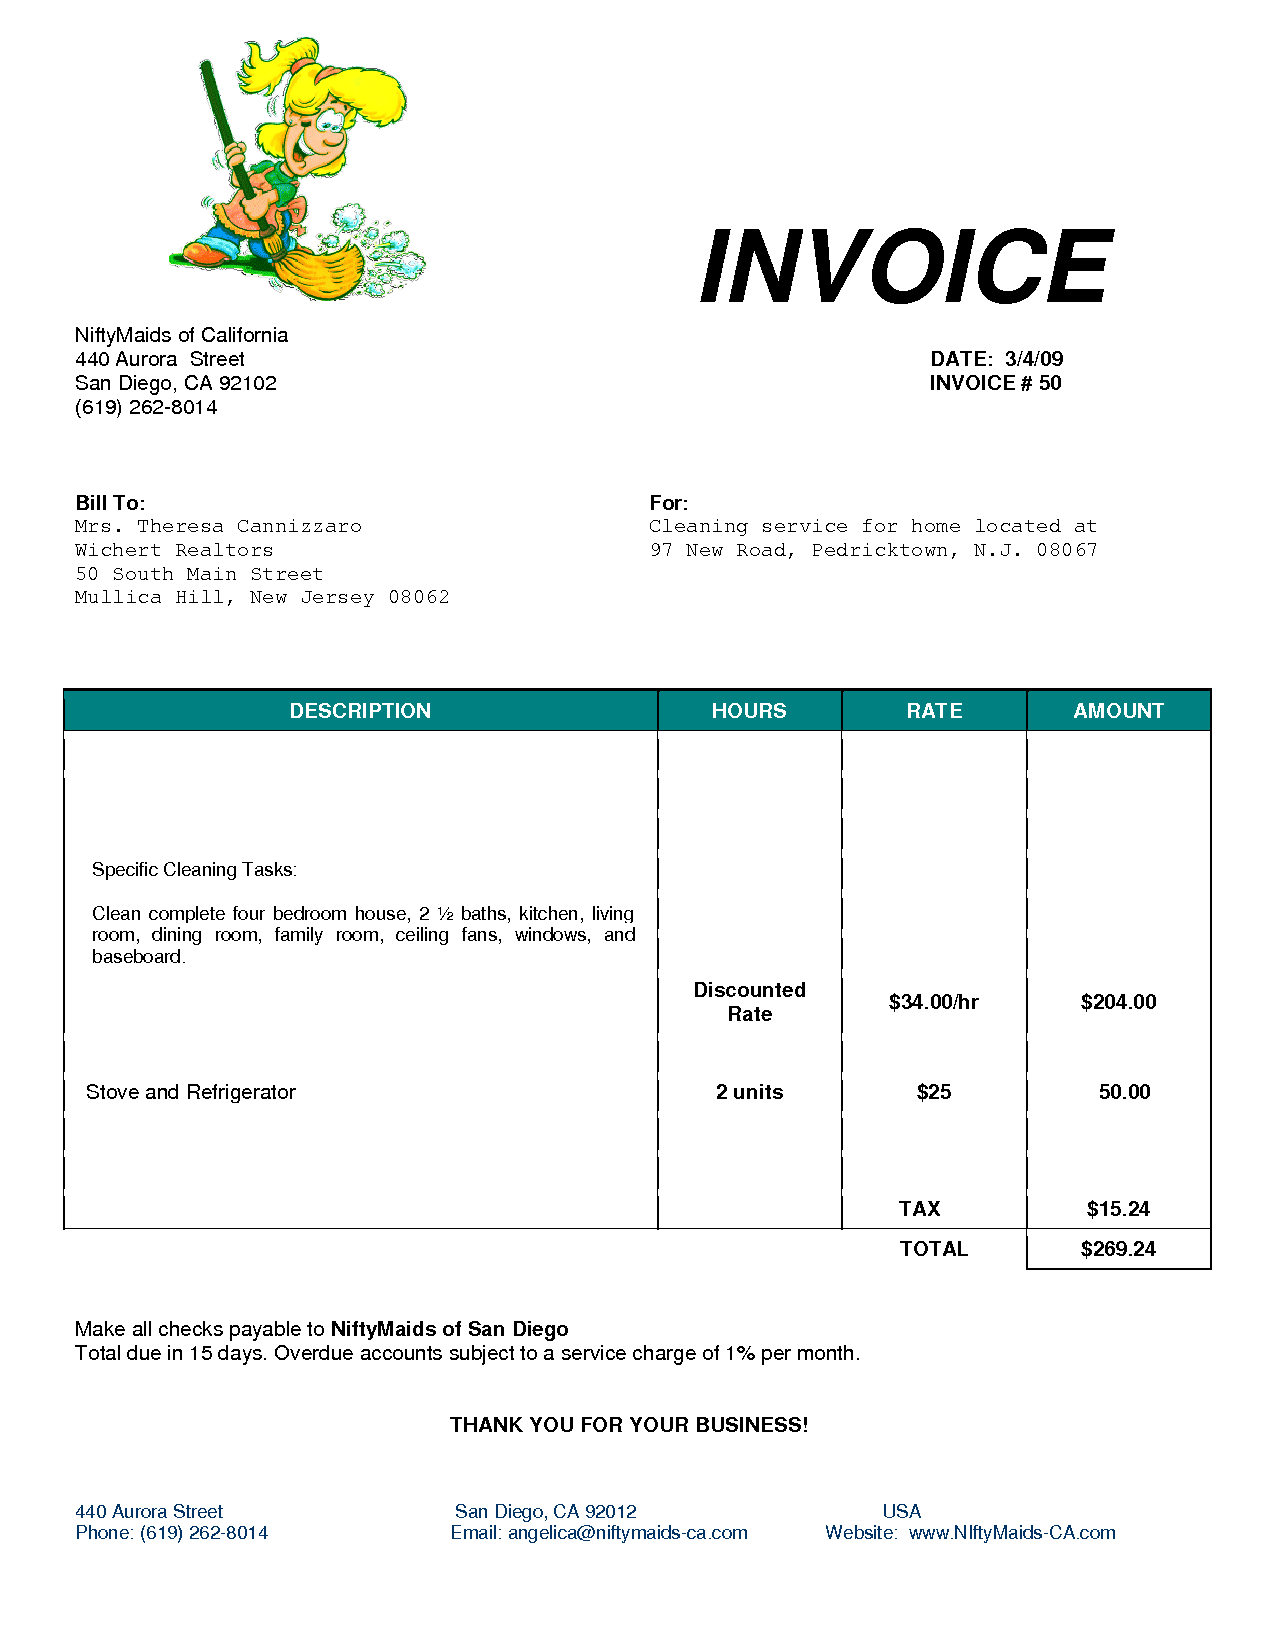 Invoice Form Template Html NinoCrudele Invoice Templates - How to create a new invoice template in quickbooks for service business